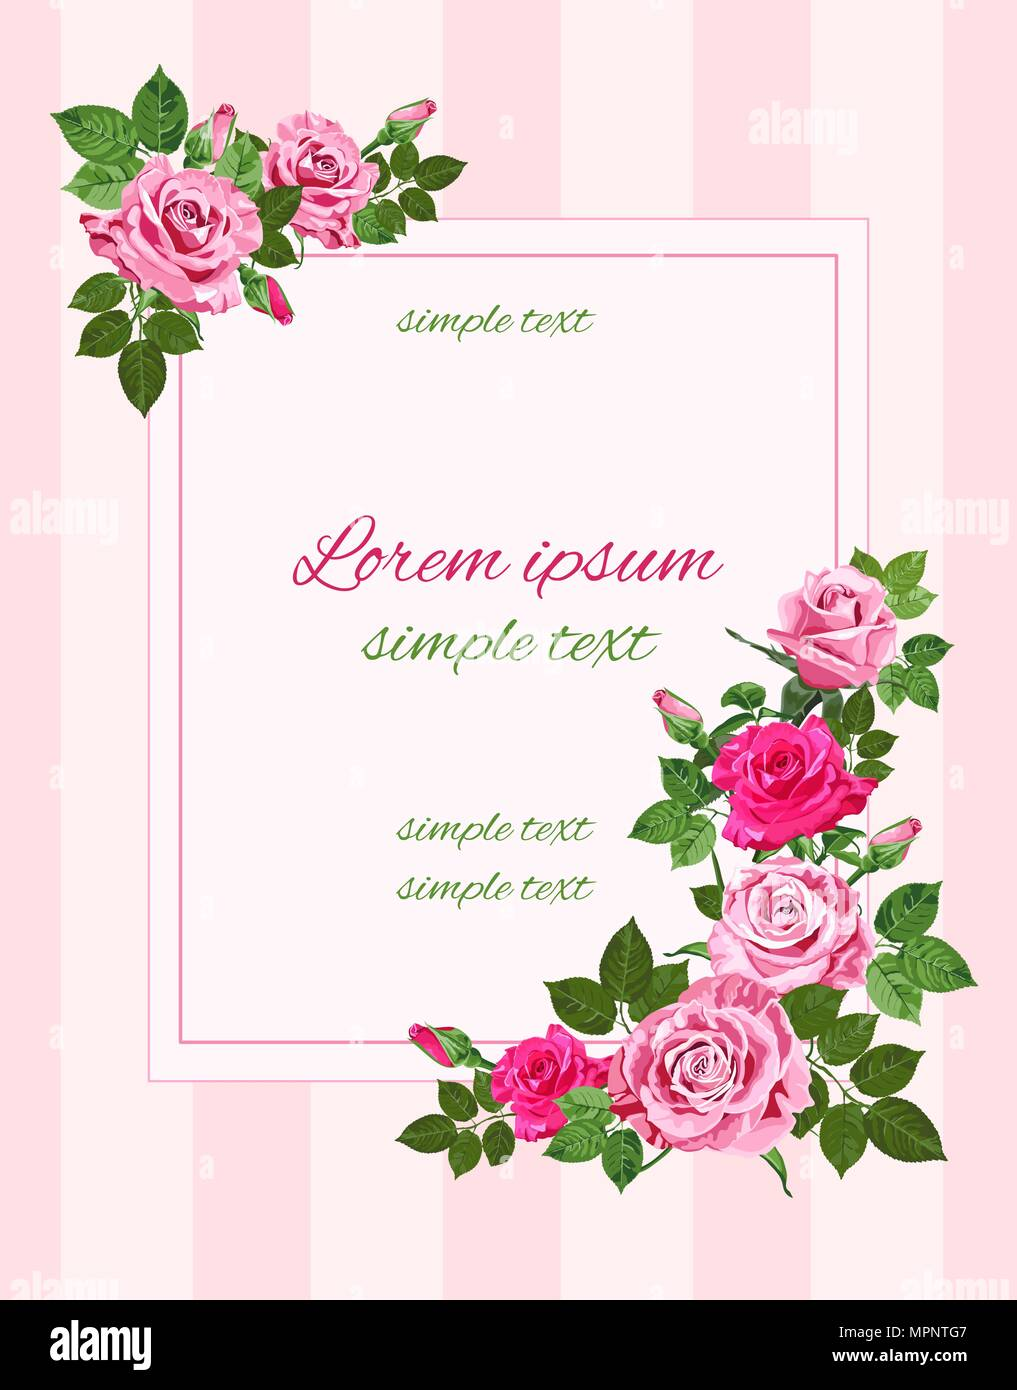 Vector Vintage Wedding Invitations With Pink Roses On The